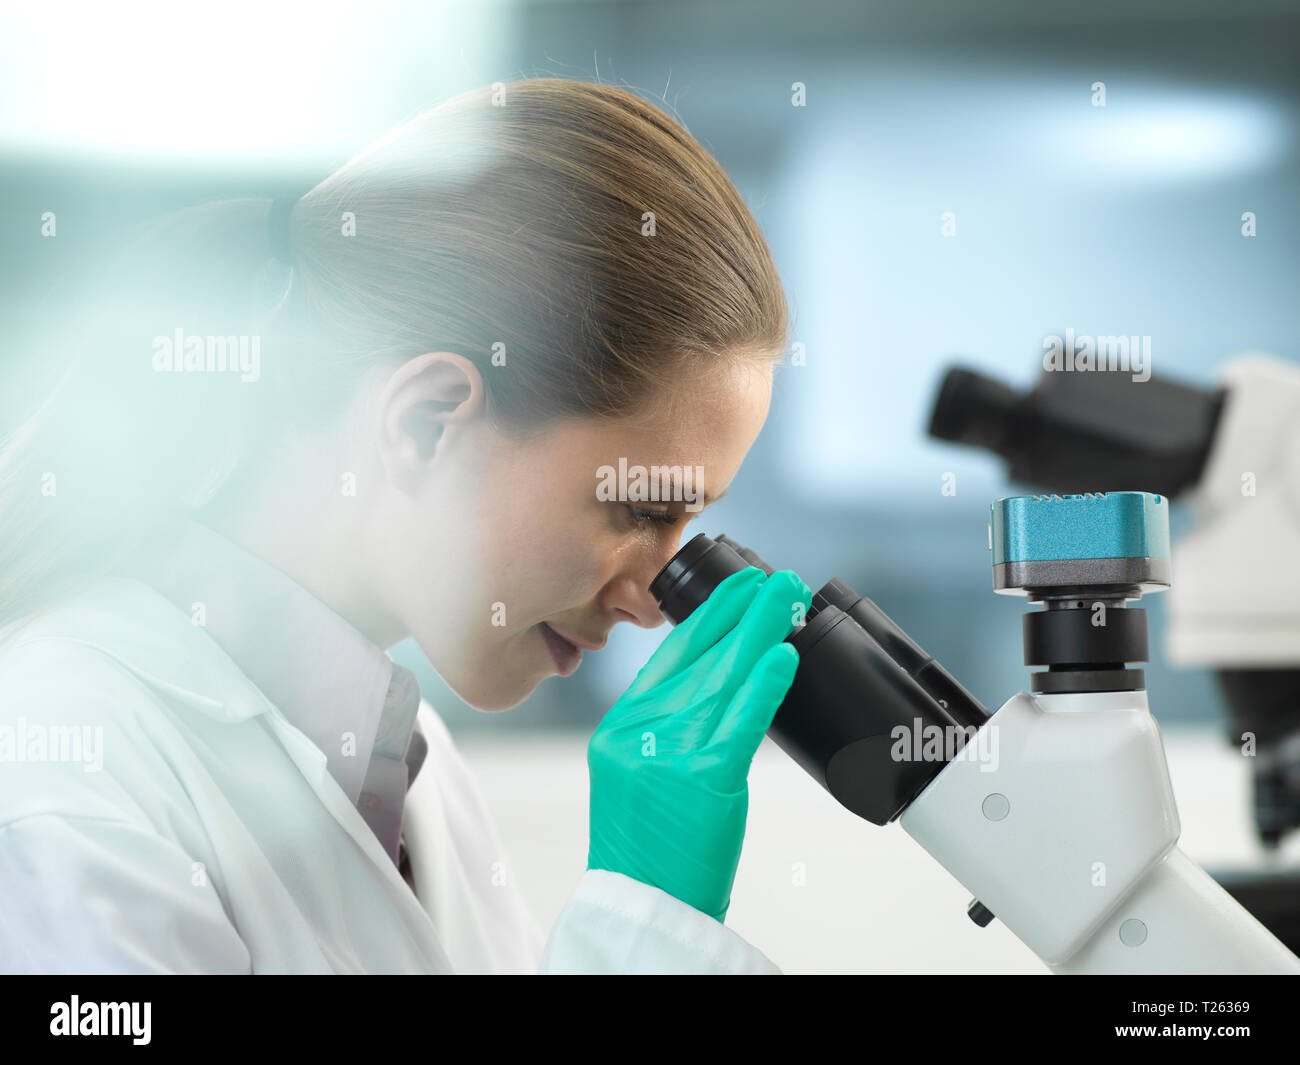 Scientist viewing a sample under a microscope in the laboratory - Stock Image